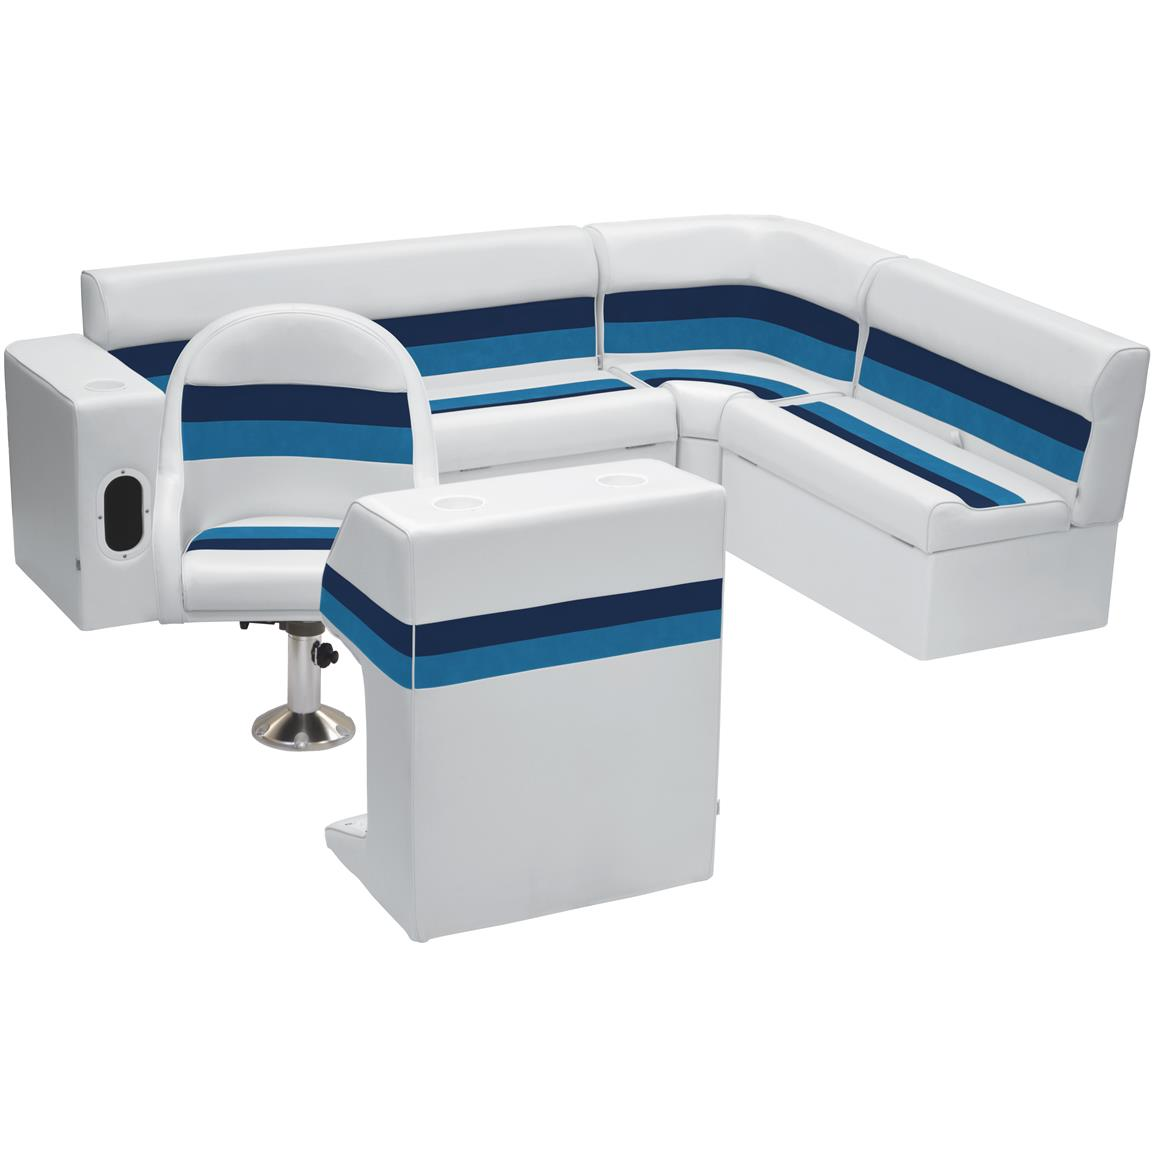 Wise® Deluxe Pontoon Complete Rear Seating Group, Color A: White / Navy / Blue